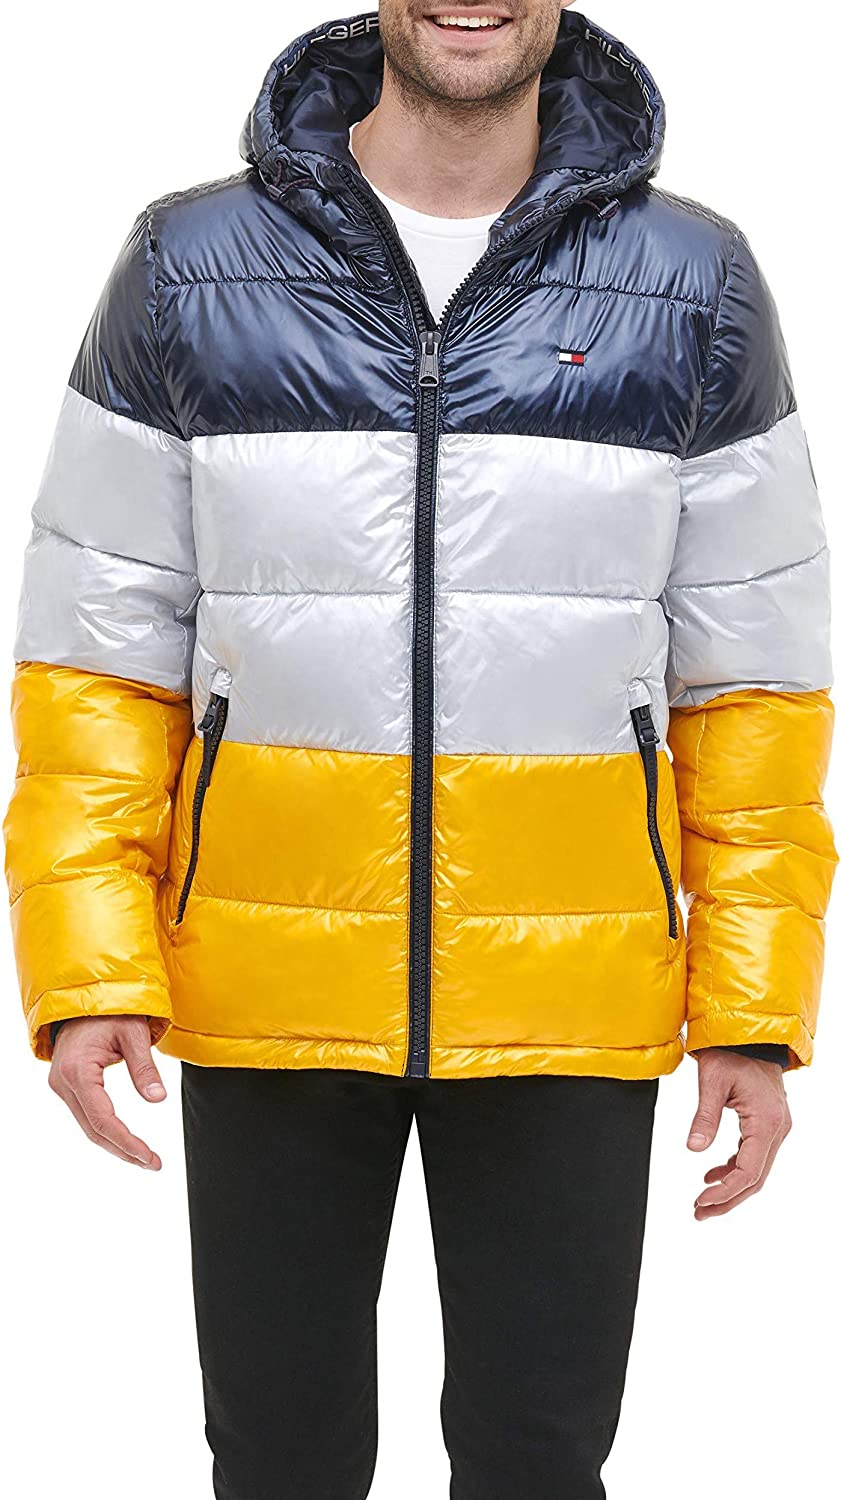 Regular and Big /& Tall Sizes Tommy Hilfiger Mens Classic Hooded Puffer Jacket Down Alternative Coat